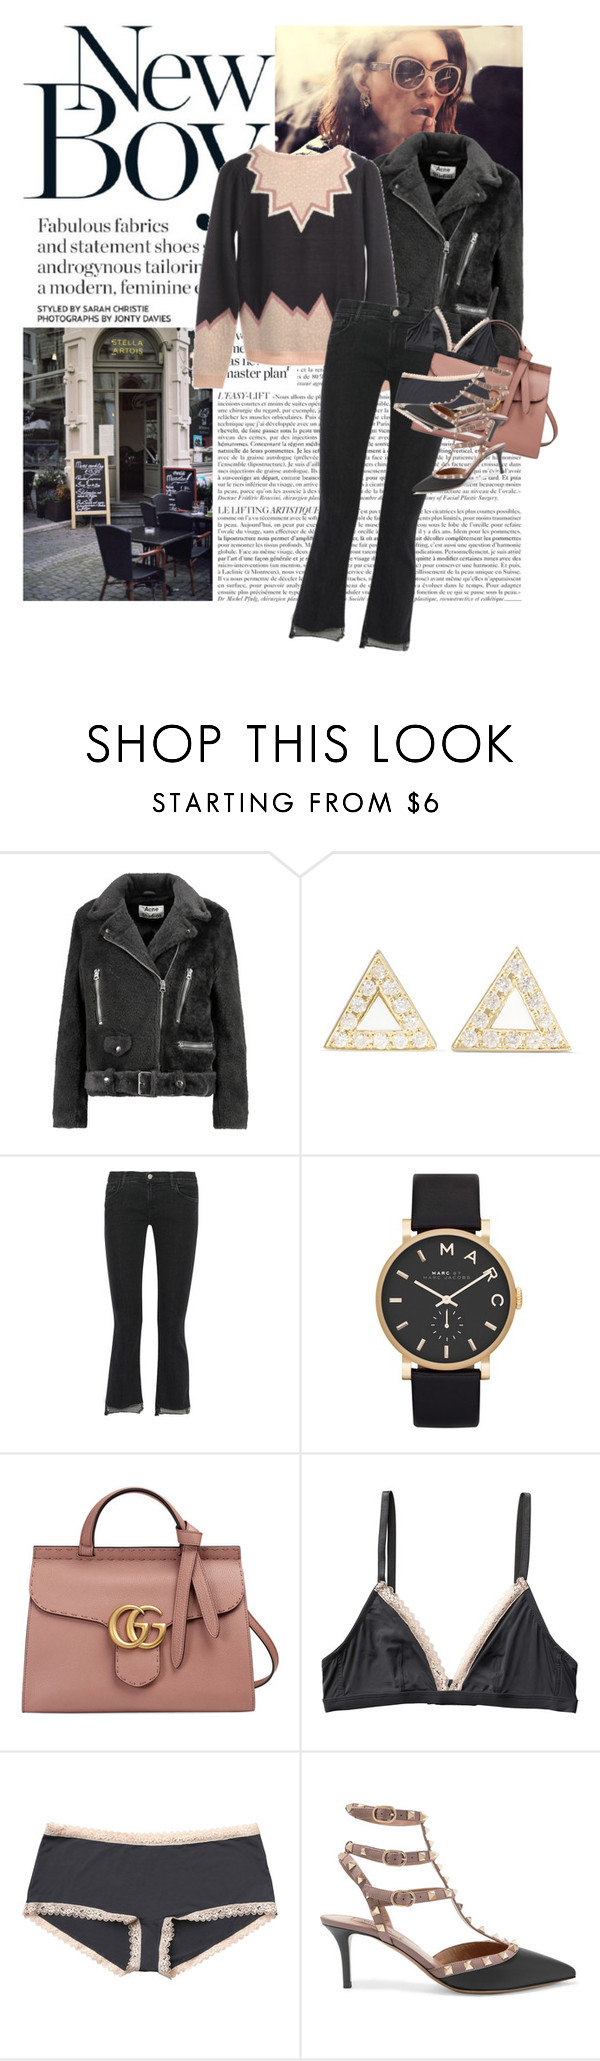 """""""Untitled #1786"""" by hellohanna ❤ liked on Polyvore featuring Acne Studios, Jennifer Meyer Jewelry, J Brand, Marc by Marc Jacobs, Gucci, Monki and Valentino"""